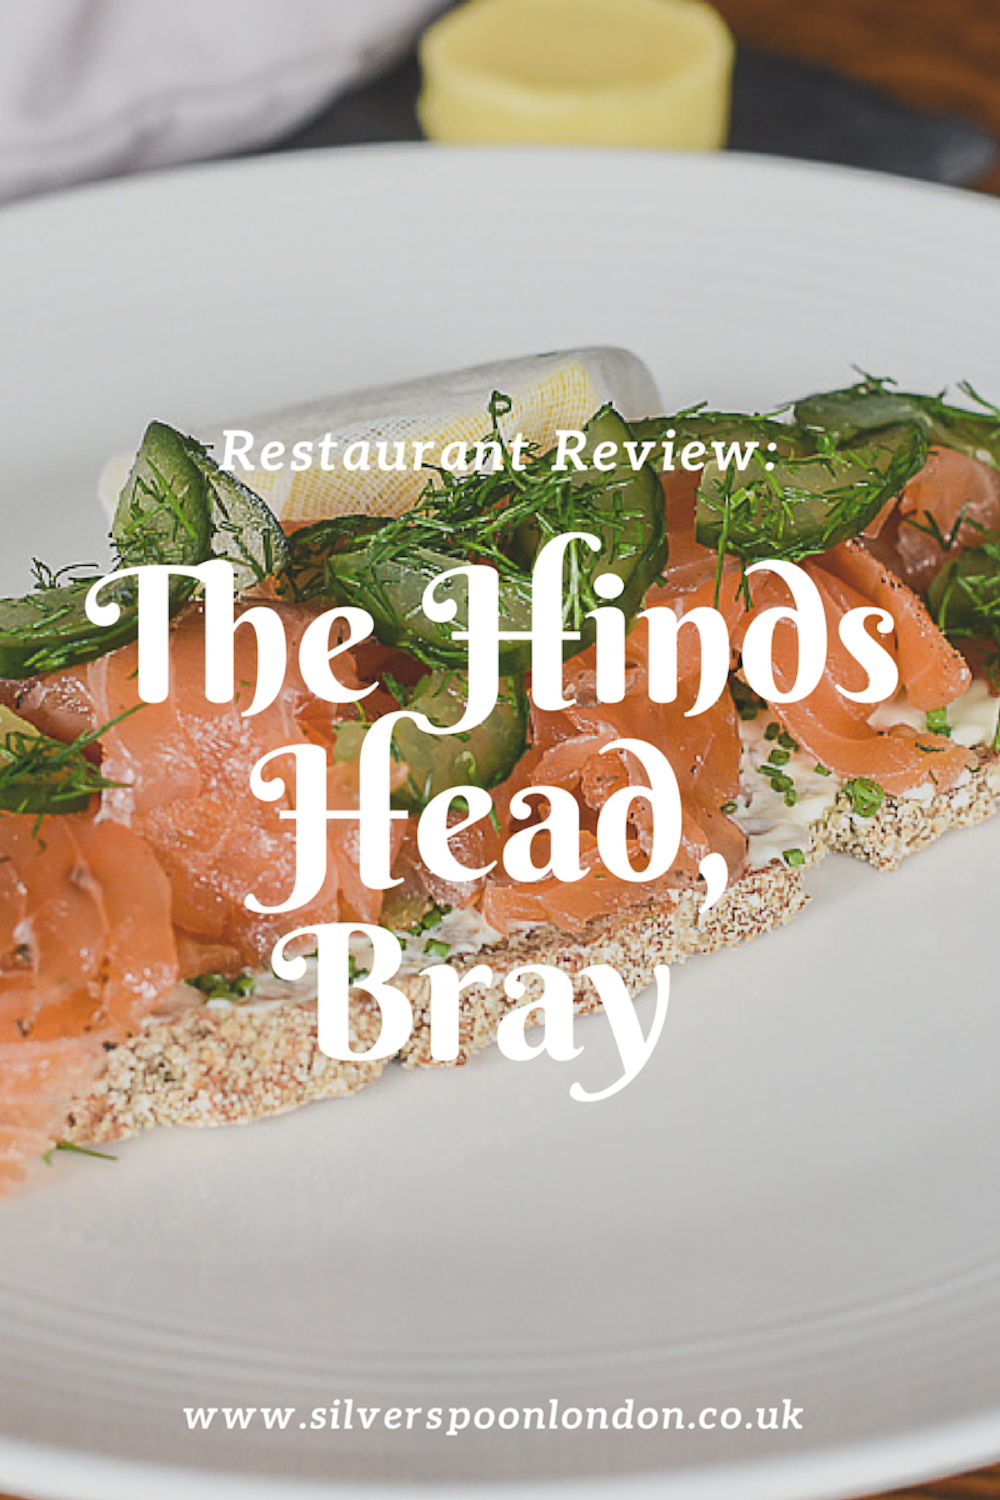 Restaurant Review: The Hinds Head Bray